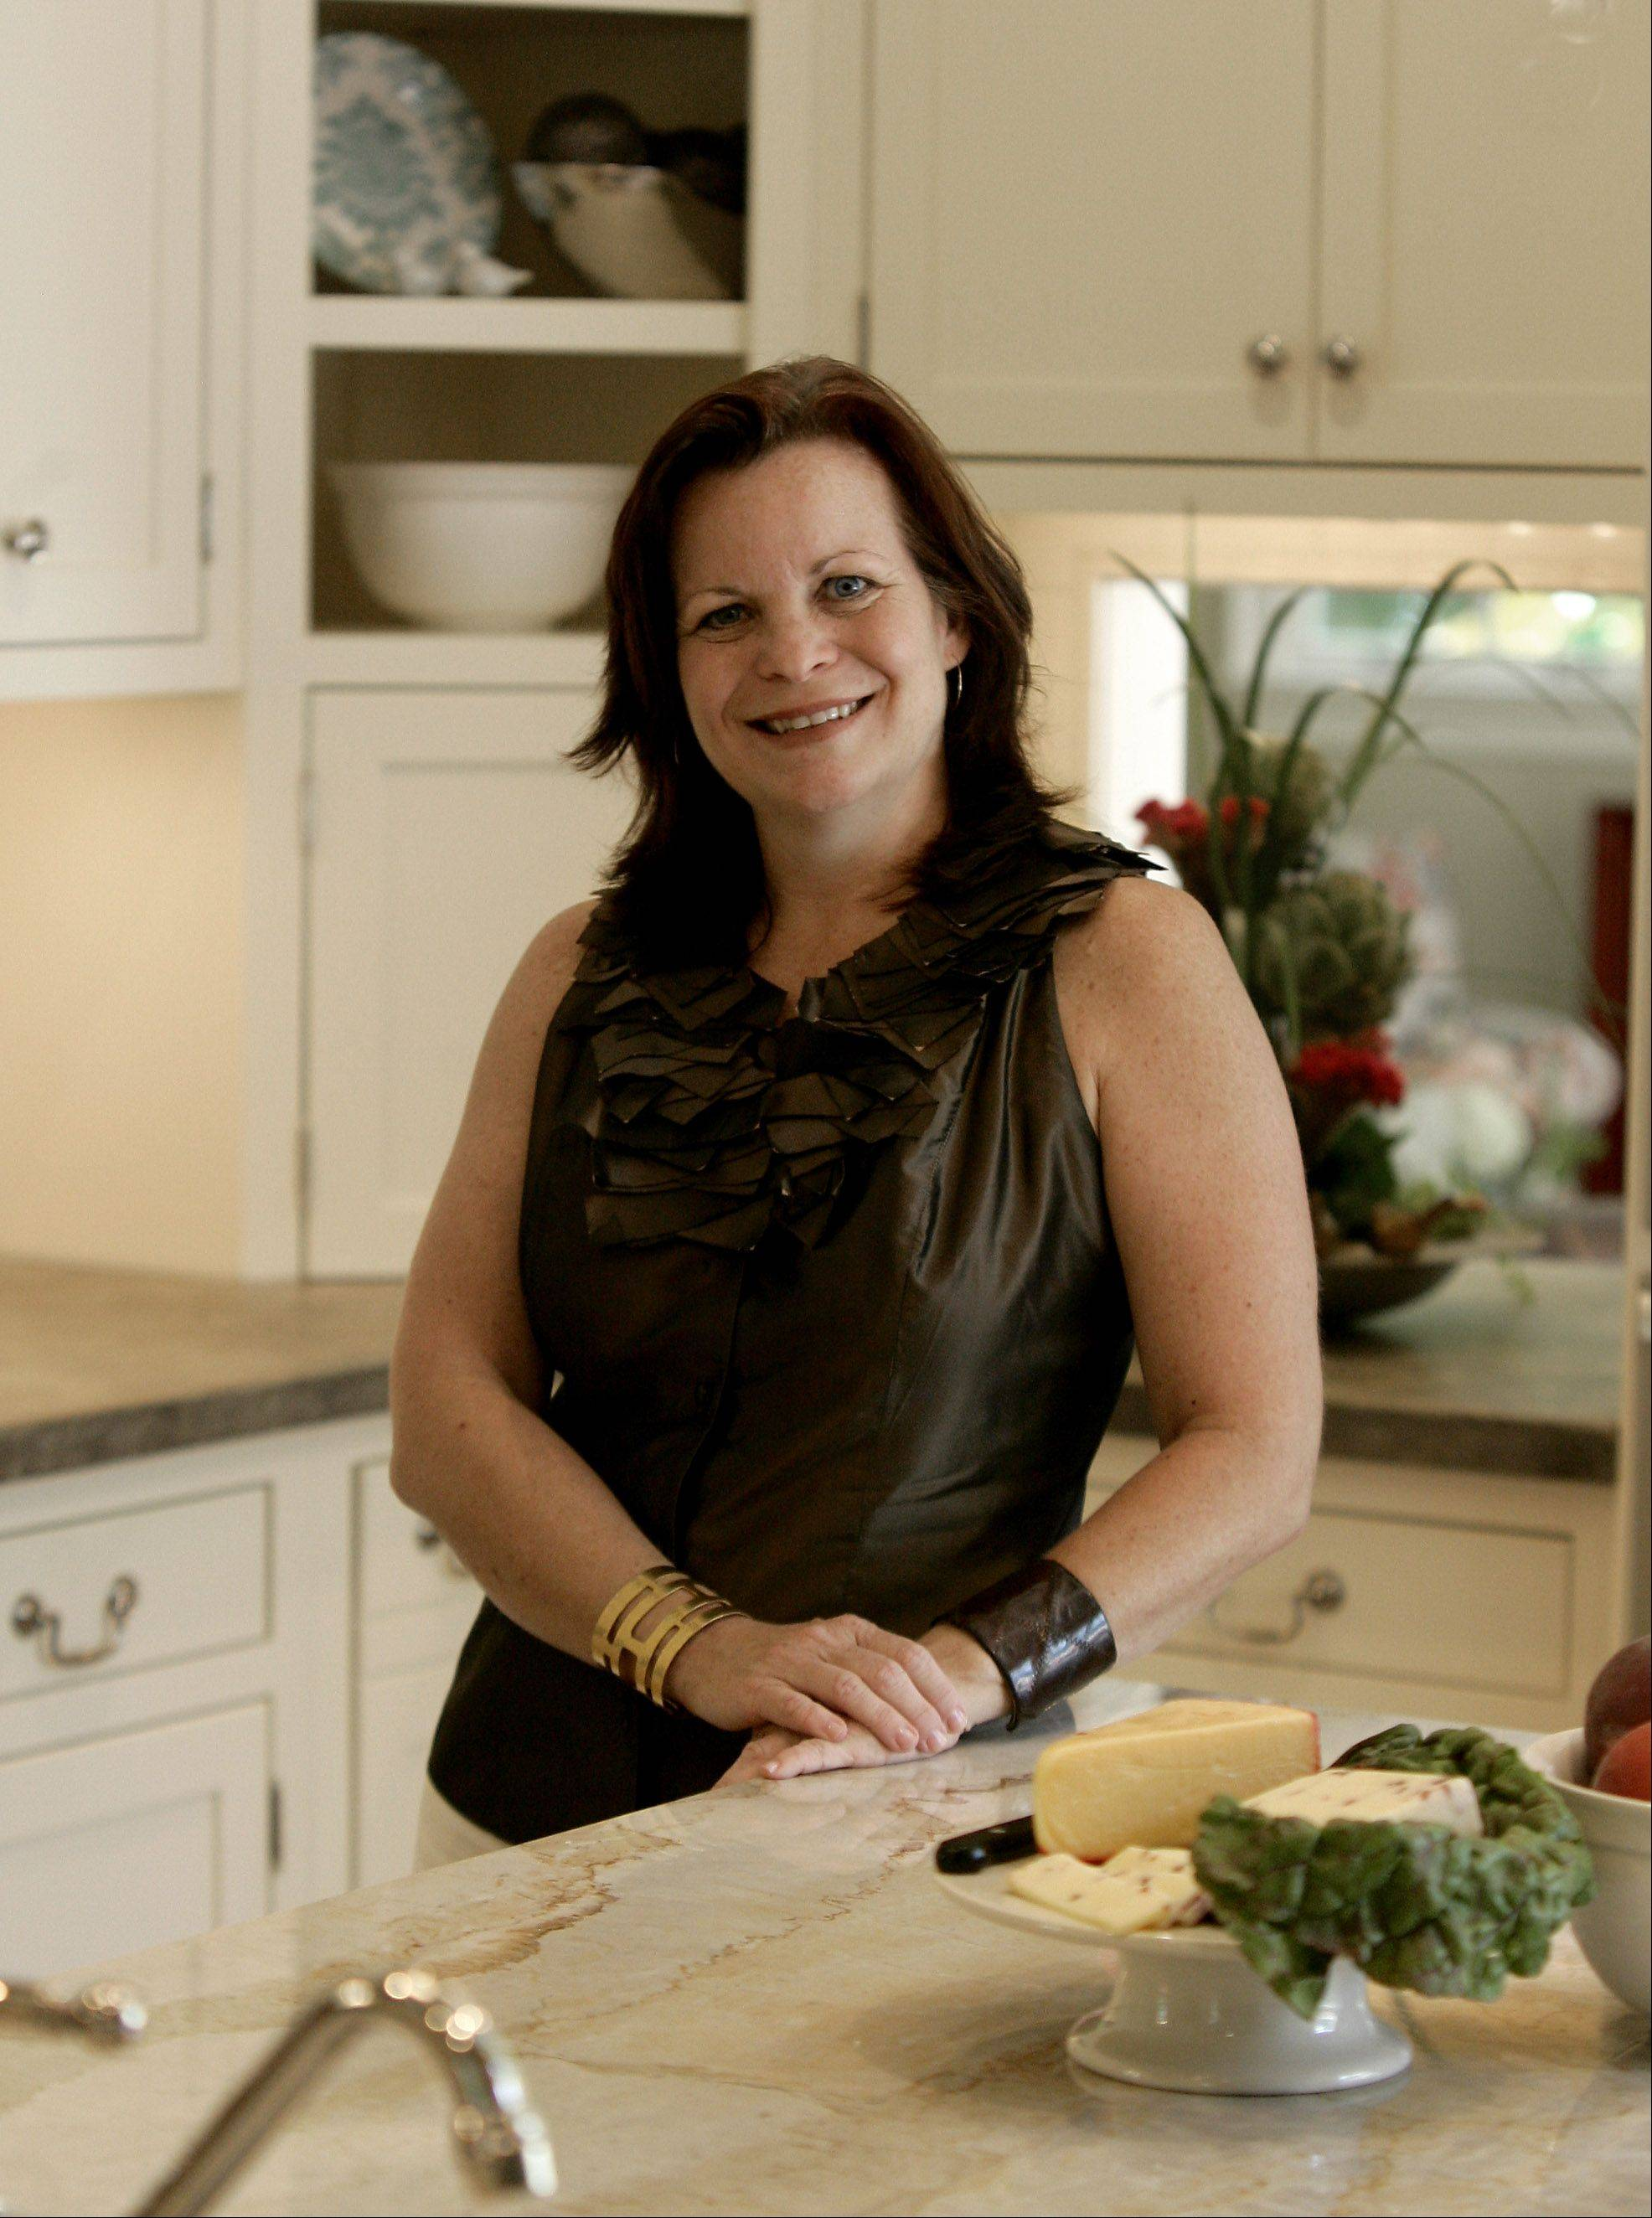 Susan Brunstrum of sweetpeasdesign helped the Lake Bluff homeowner select changes for her kitchen.